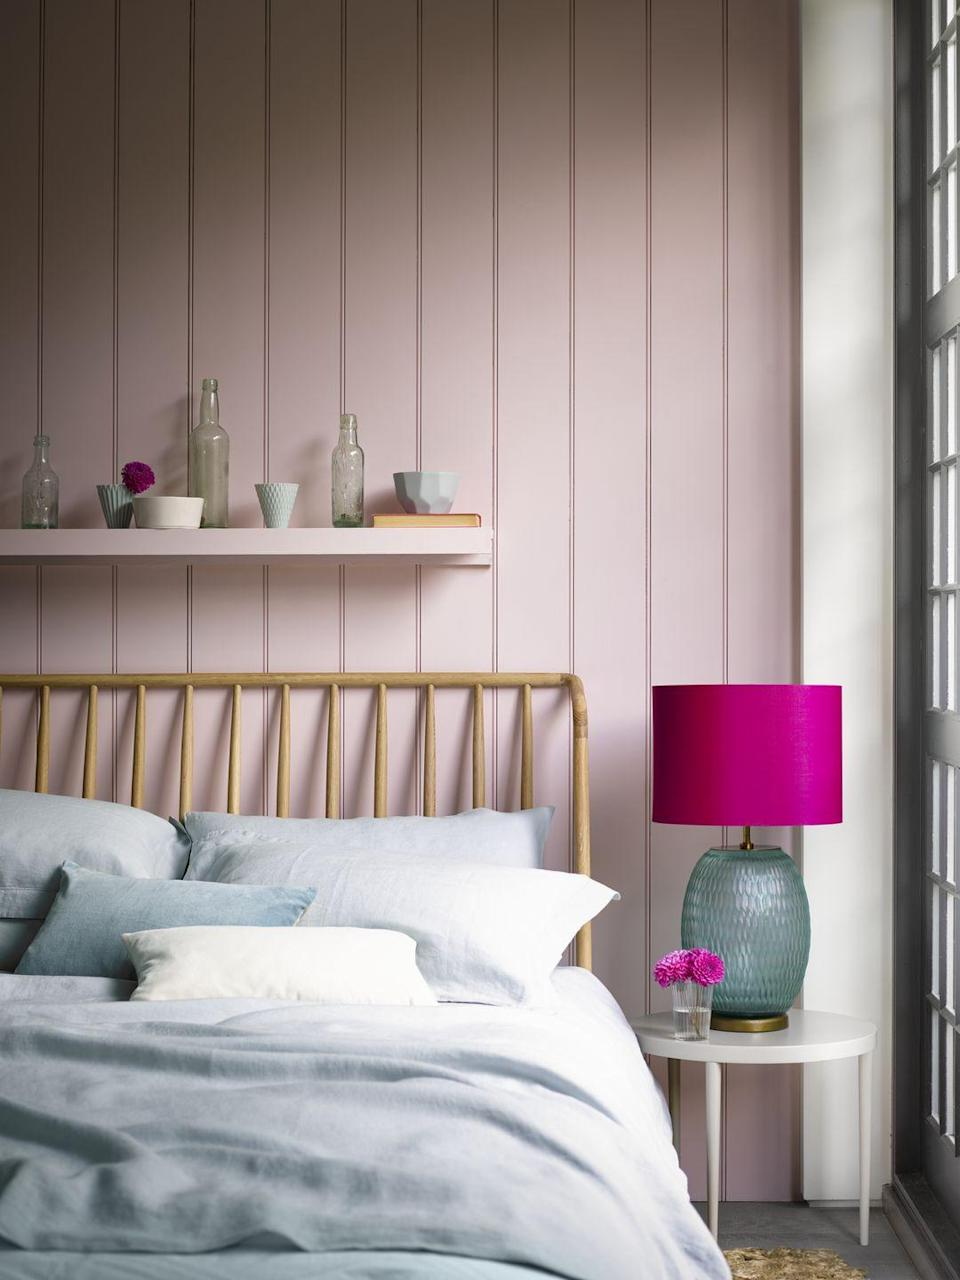 """<p>A pink and grey bedroom is a colour combination made in heaven. If you're not sure how to tie the hues together, a great place to start is to introduce colours through bedlinen. Soft grey sheets against a blush pink wall will always work marvellously. You can then introduce pink accents through accessories, like a pink lampshade, for example.</p><p>• Shop the look at <a href=""""https://go.redirectingat.com?id=127X1599956&url=https%3A%2F%2Fwww.pooky.com%2F&sref=https%3A%2F%2Fwww.housebeautiful.com%2Fuk%2Fdecorate%2Fbedroom%2Fg37103497%2Fpink-grey-bedroom%2F"""" rel=""""nofollow noopener"""" target=""""_blank"""" data-ylk=""""slk:Pooky"""" class=""""link rapid-noclick-resp"""">Pooky</a></p>"""